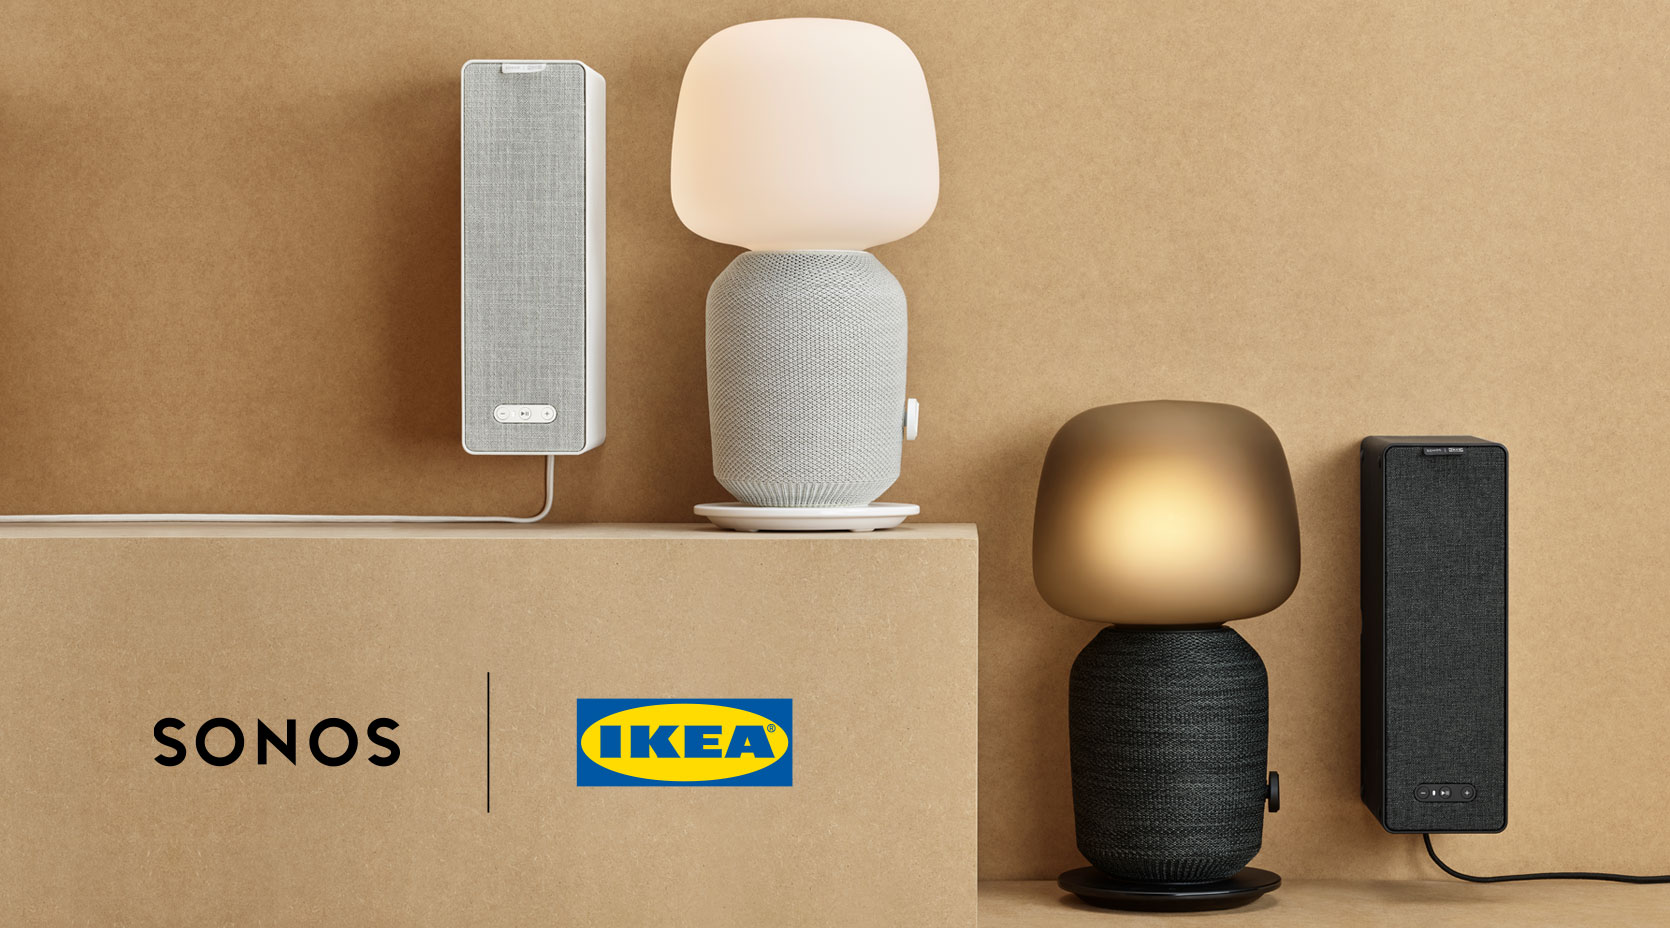 Sonos & Ikea partnership bears fruit – Meet Symfonisk